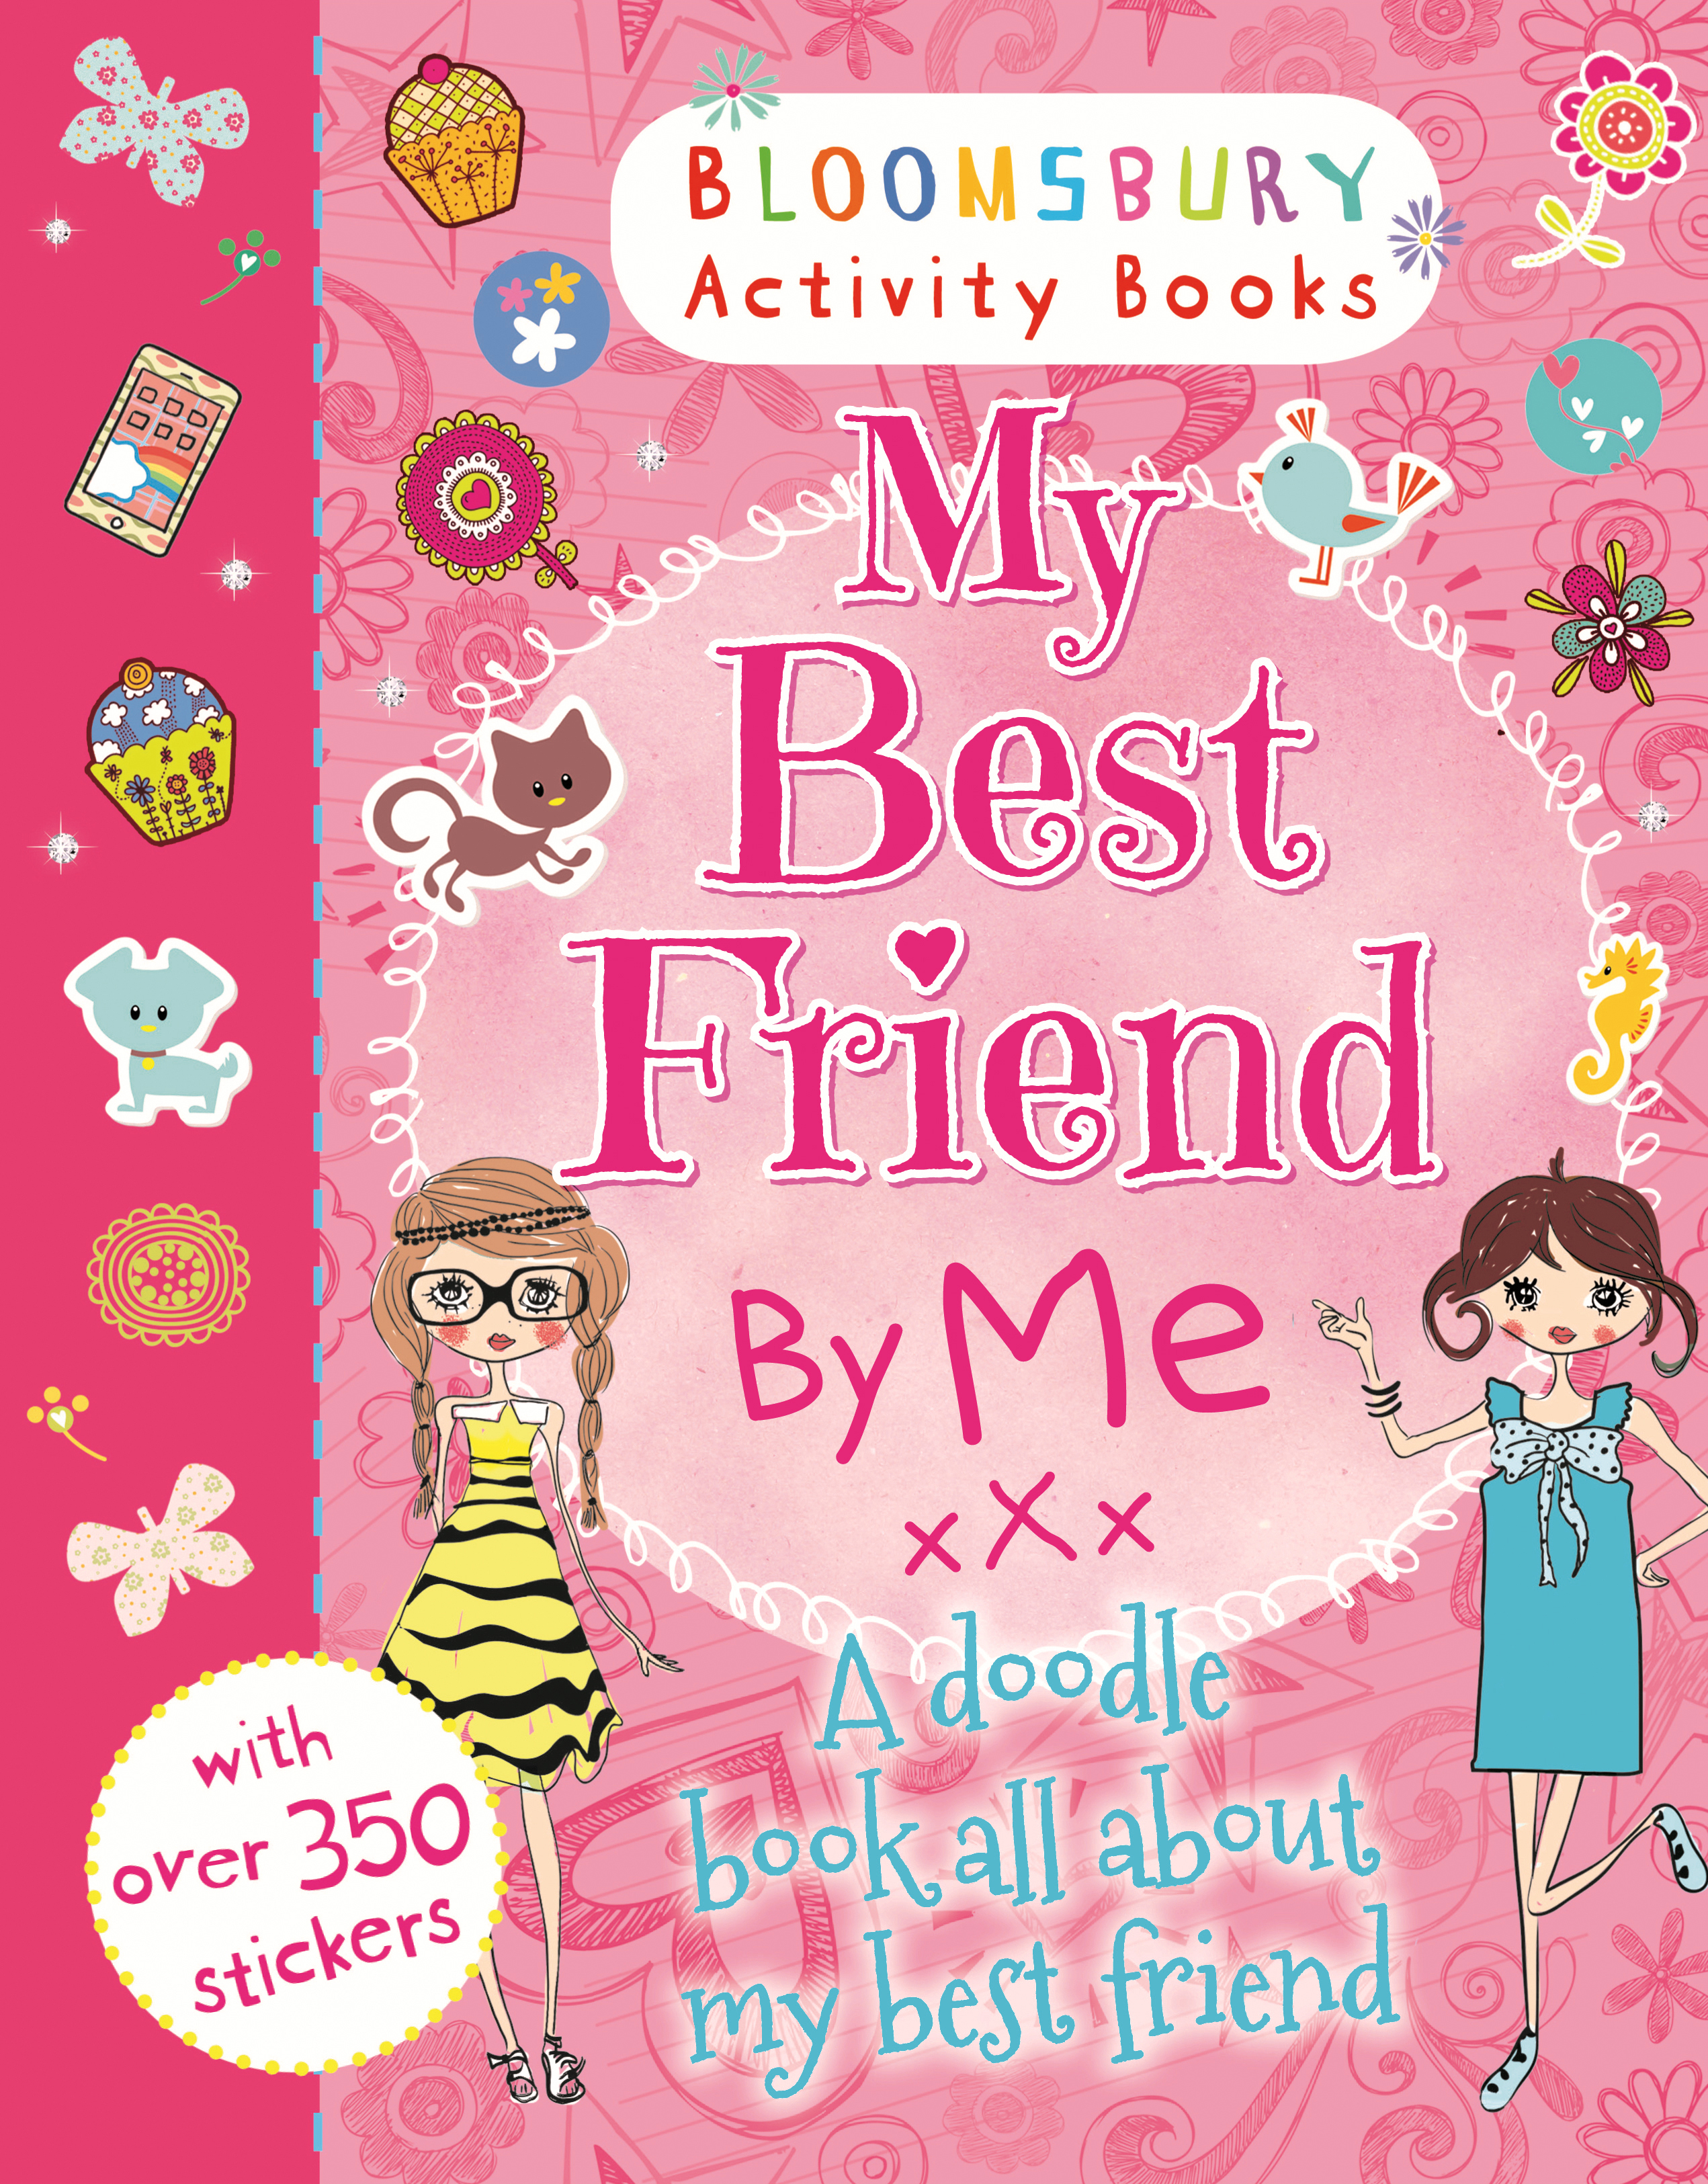 My Best Friend By Me 9781408847411 Allen Unwin Australia Sticker Activity Books Pretty Pink Availability Not Available To Order From This Website Please Try Another Retailer An And Book All About